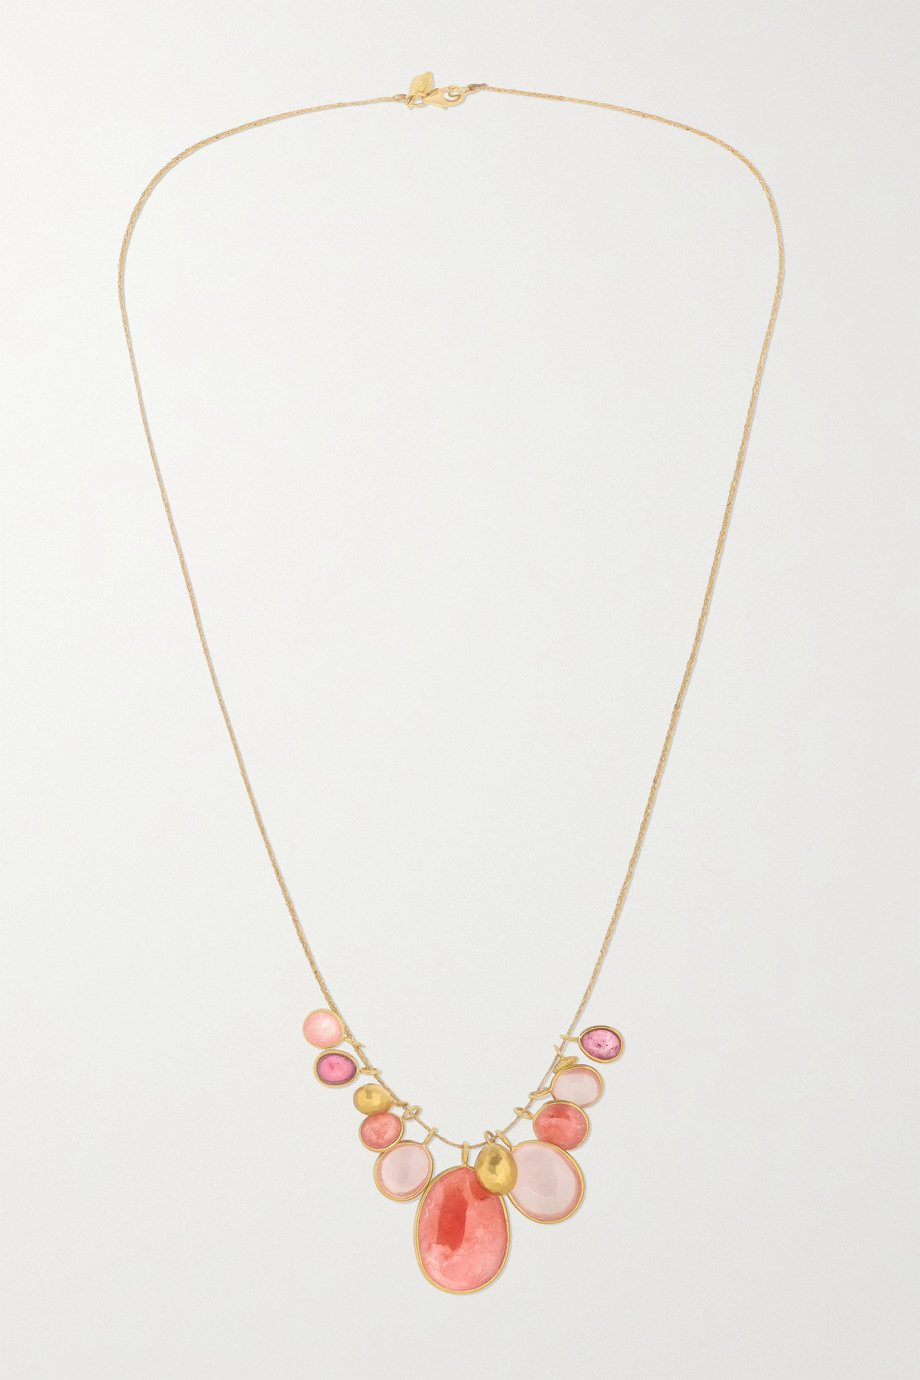 PIPPA SMALL 18-karat gold multi-stone necklace